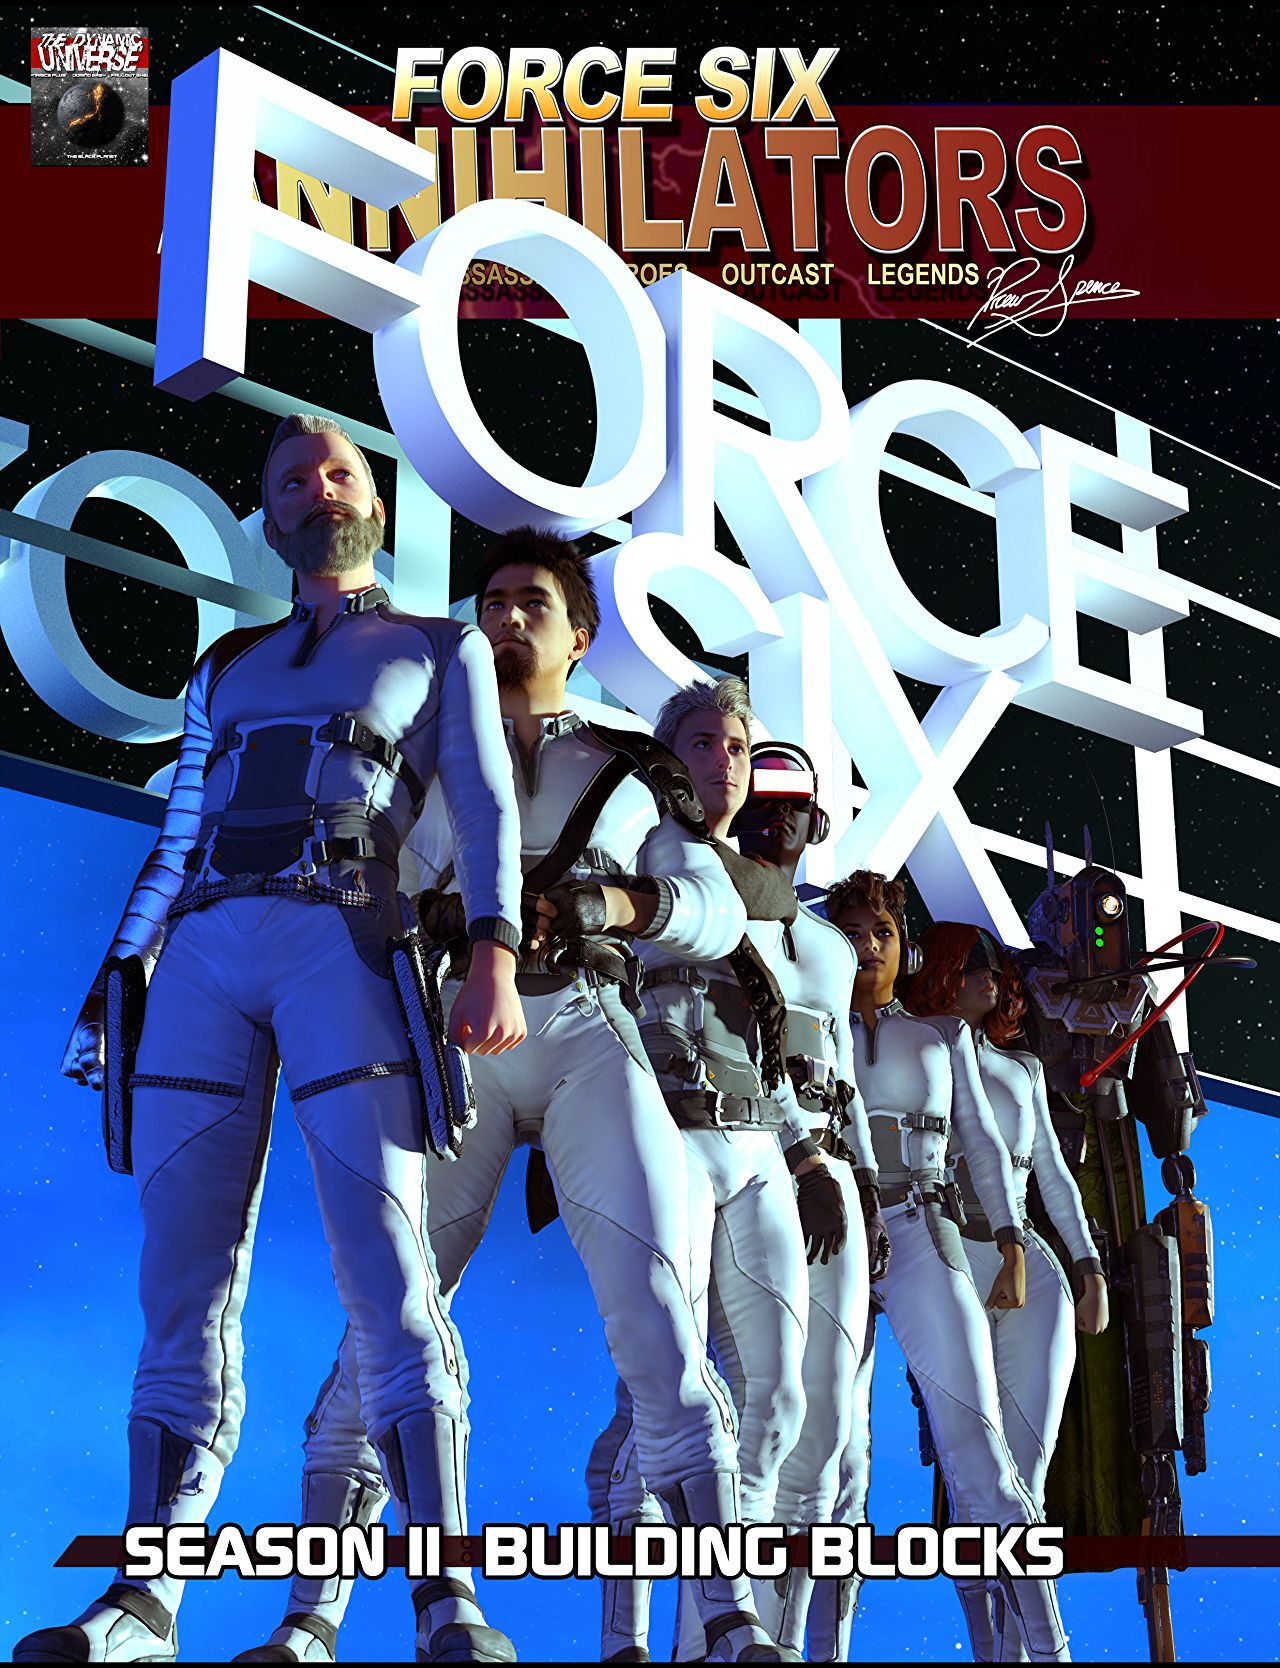 Force Six season II comic cover